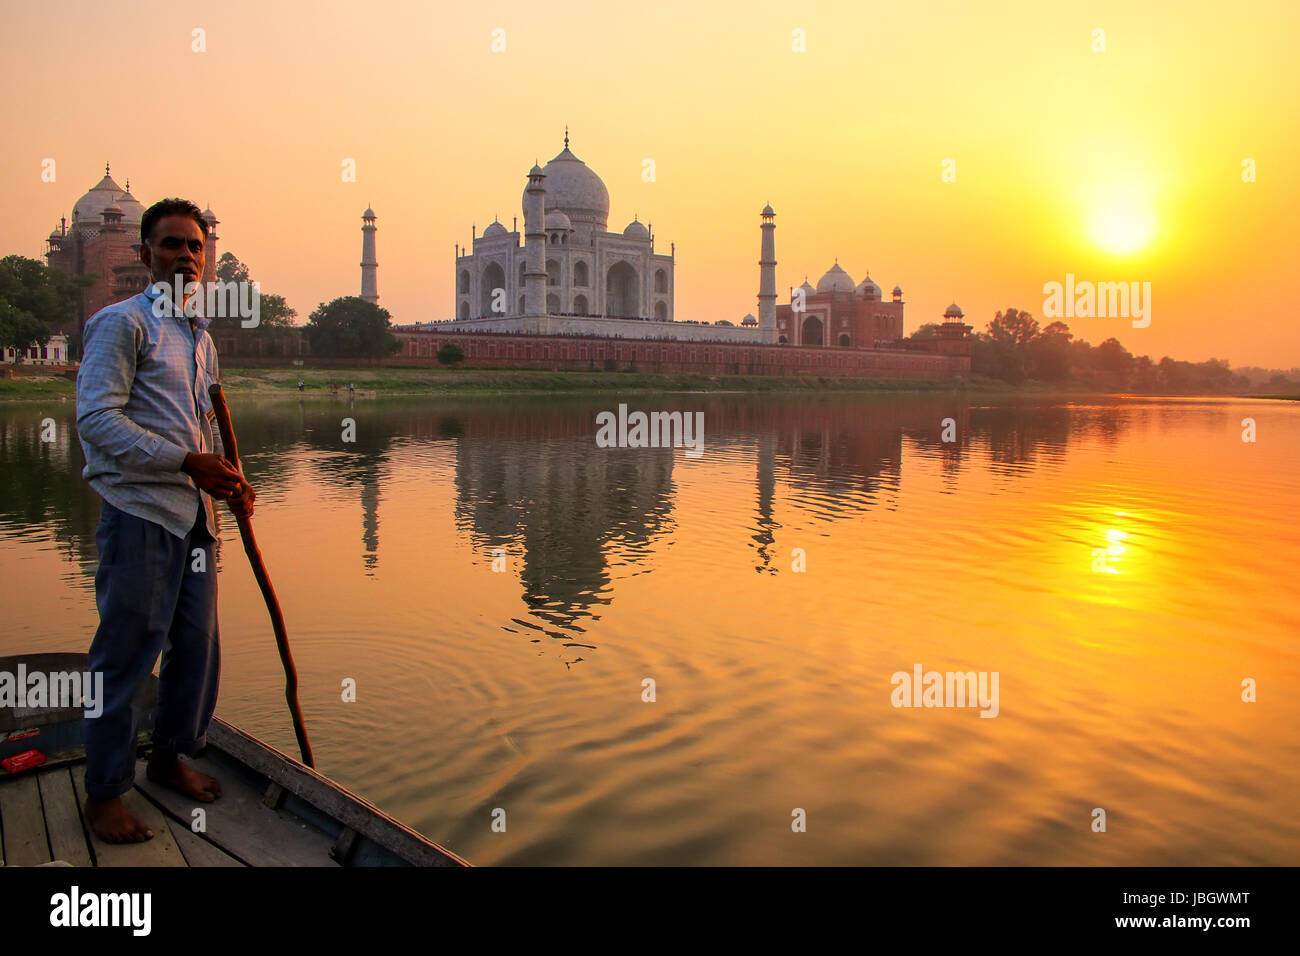 Local man steering boat on Yamuna river at sunset in front of Taj Mahal, Agra, India. It was build in 1632 by Emperor - Stock Image